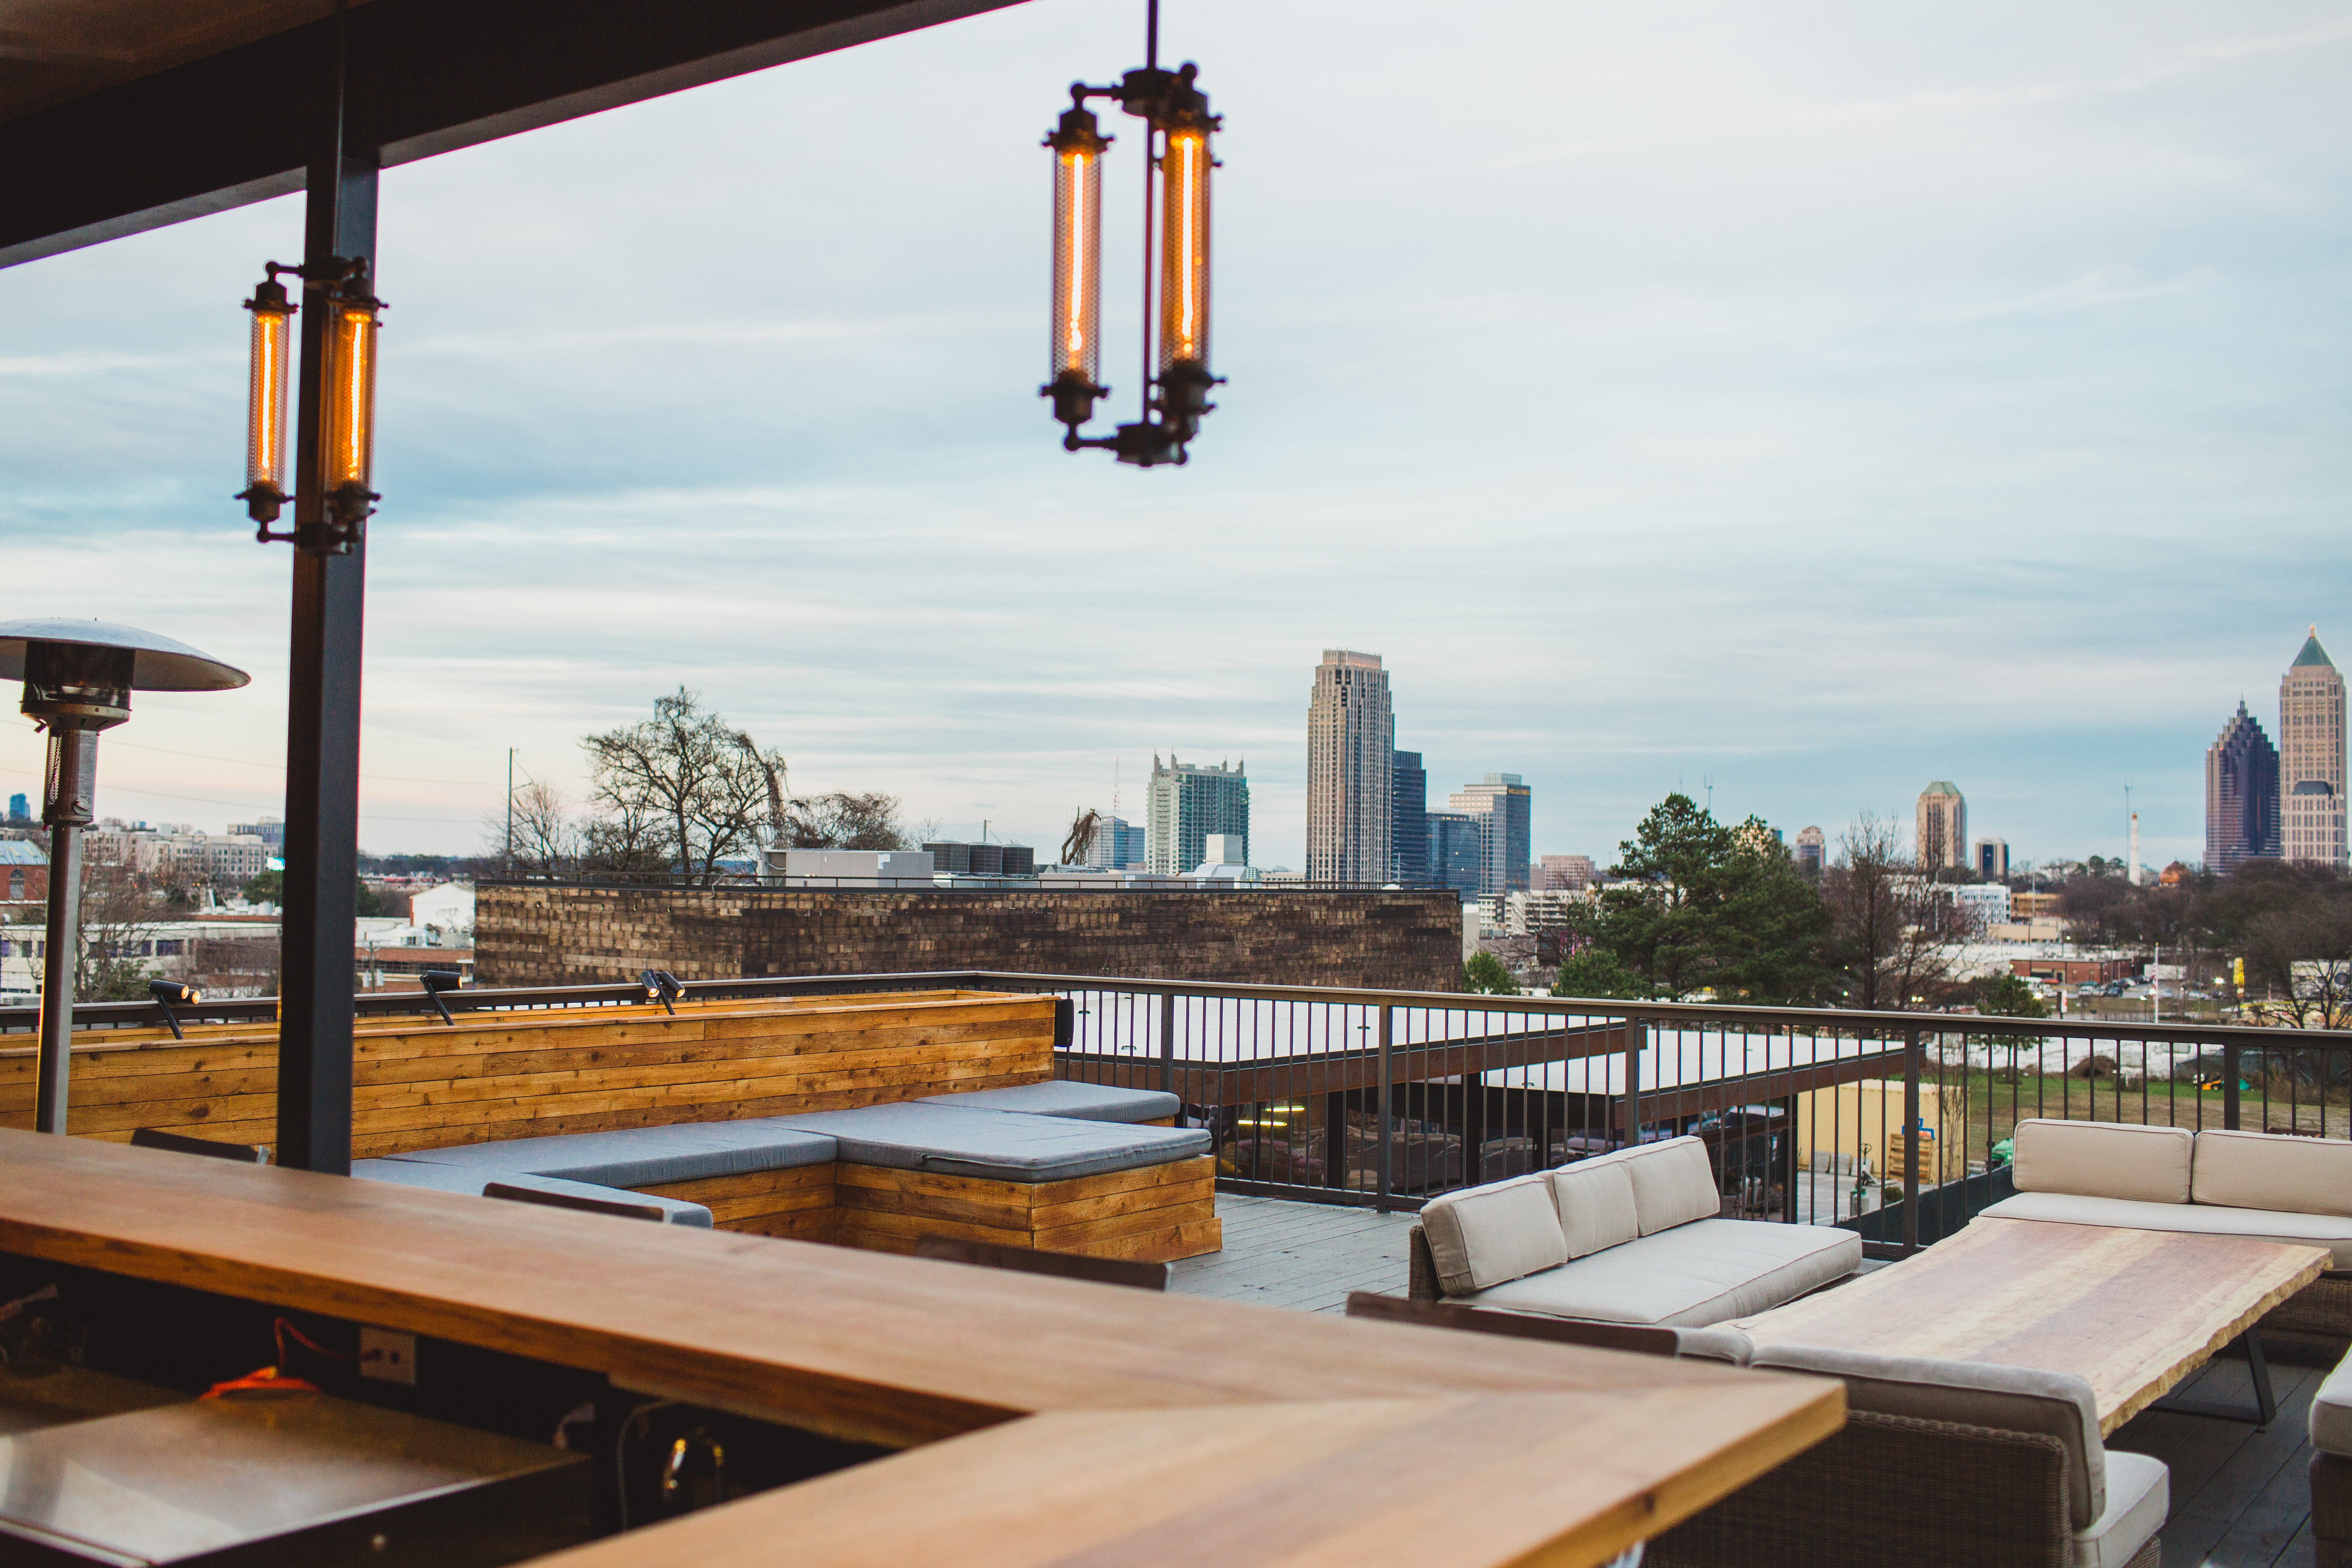 The rooftop patio at O-Ku Sushi, complete with a view of Midtown.